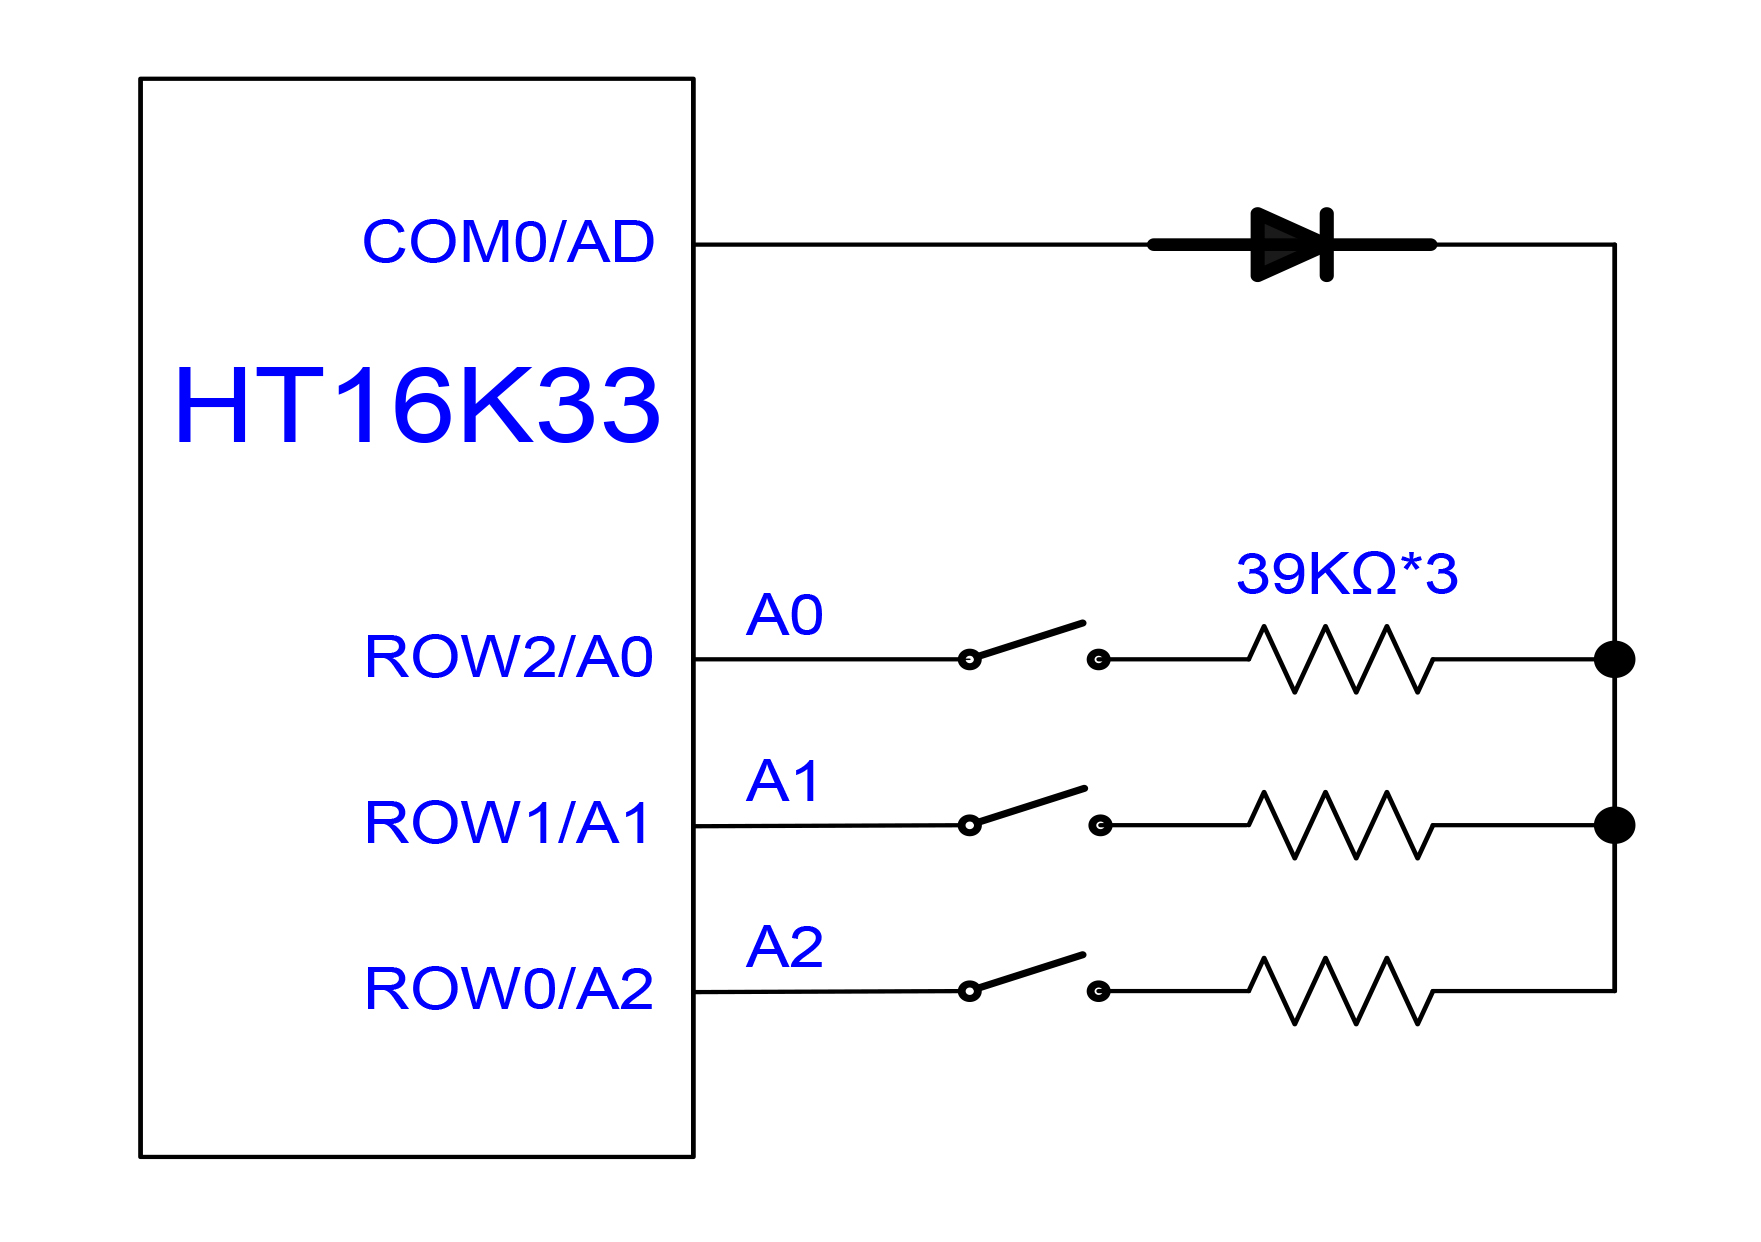 Controlling An Led Matrix With The Ht16k33 Parts Not Included Bicolour Flasher Circuit Electronics Project Address Bits Are Set In Hardware By Wiring 39k Resistors Line A Diode To Connect Com0 Pin Either Row2 A0 Row1 A1